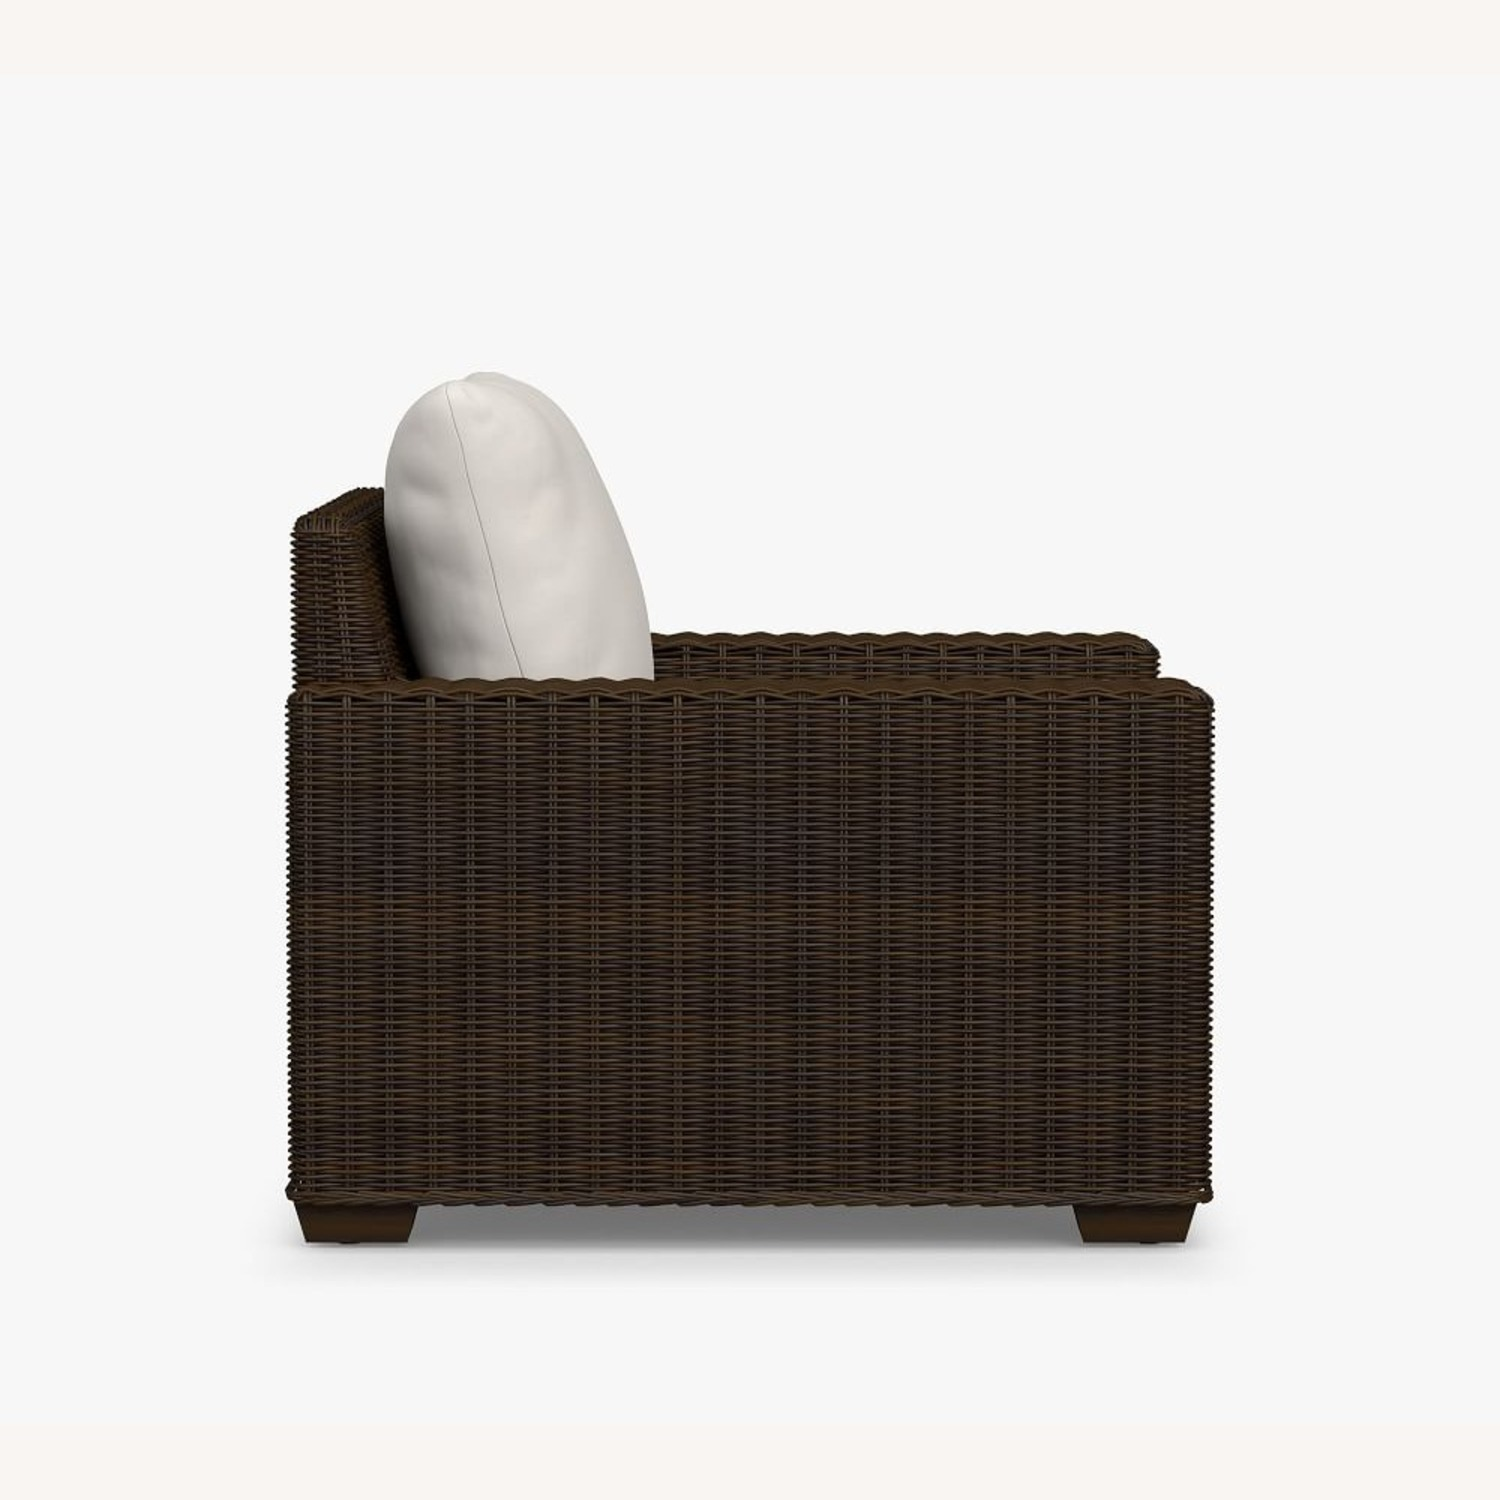 Pottery Barn Torrey All-Weather Lounge Chair - image-2